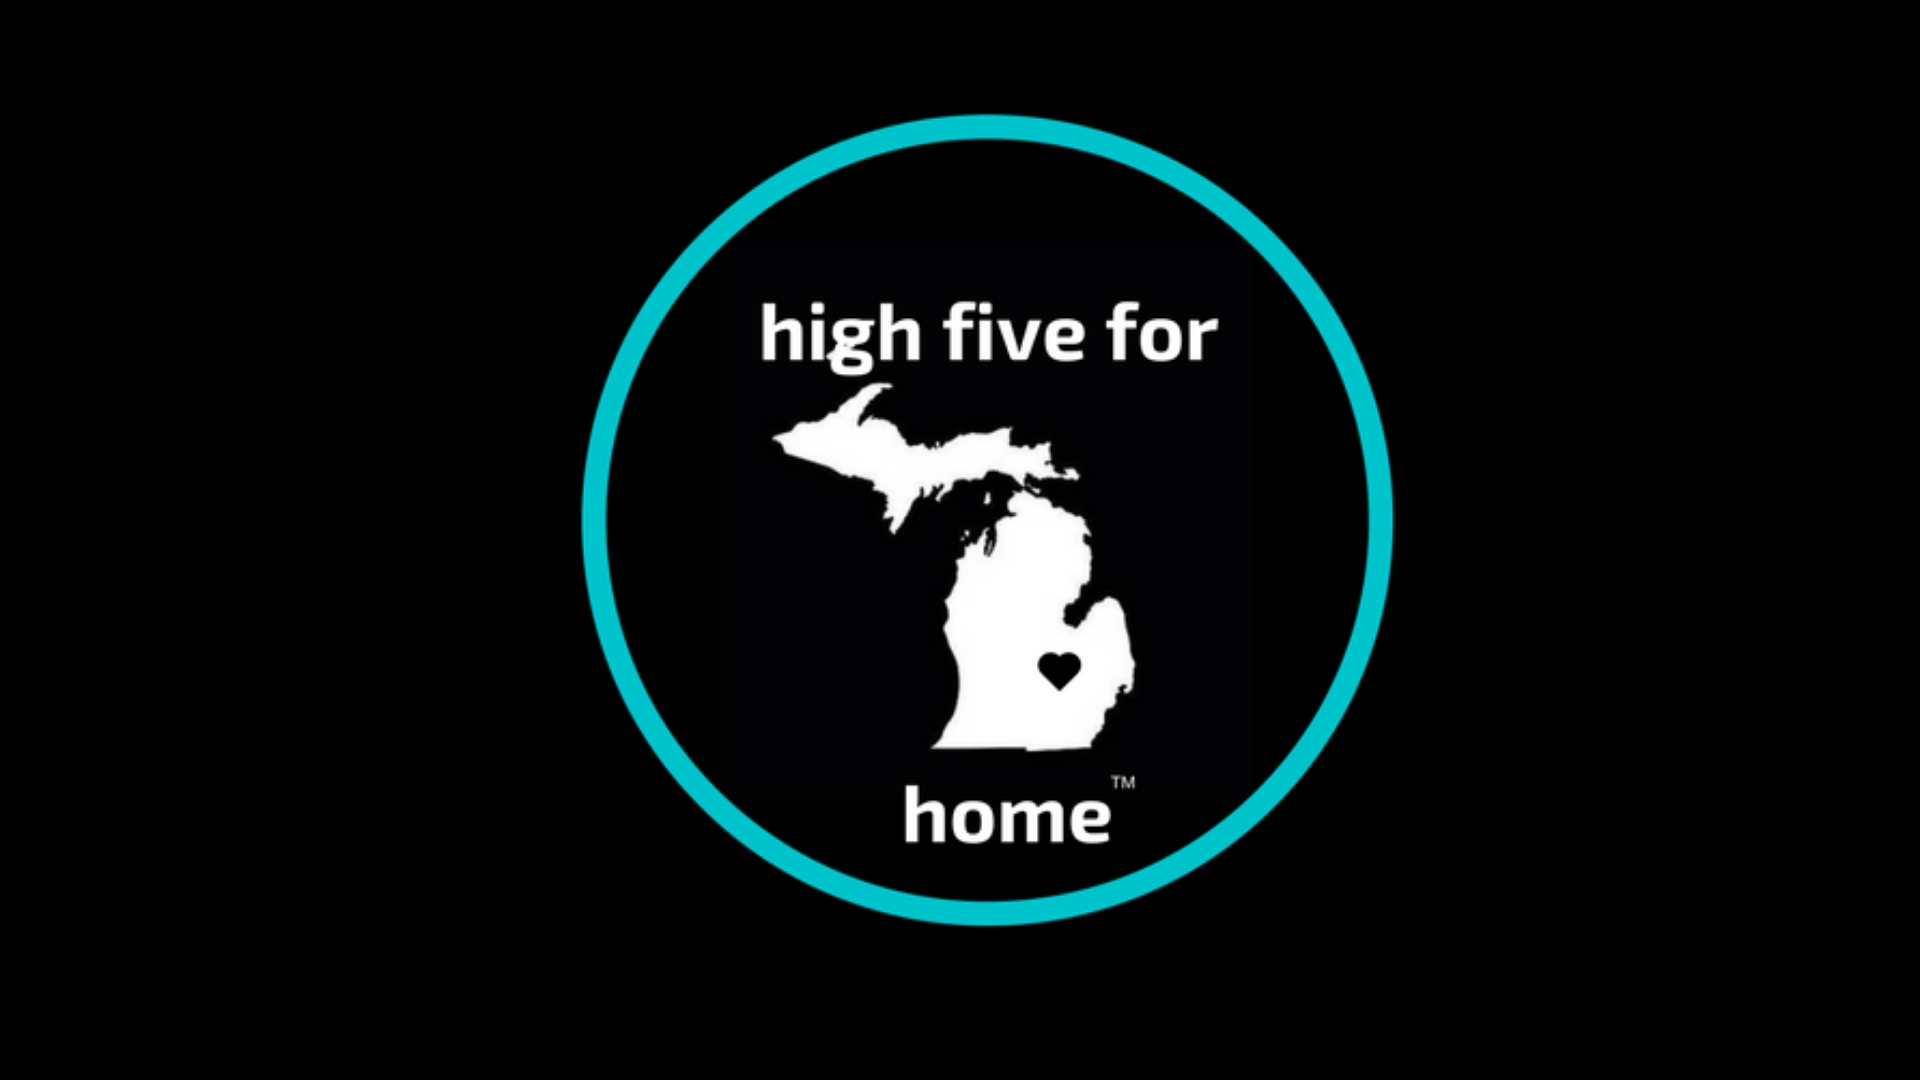 high five for home